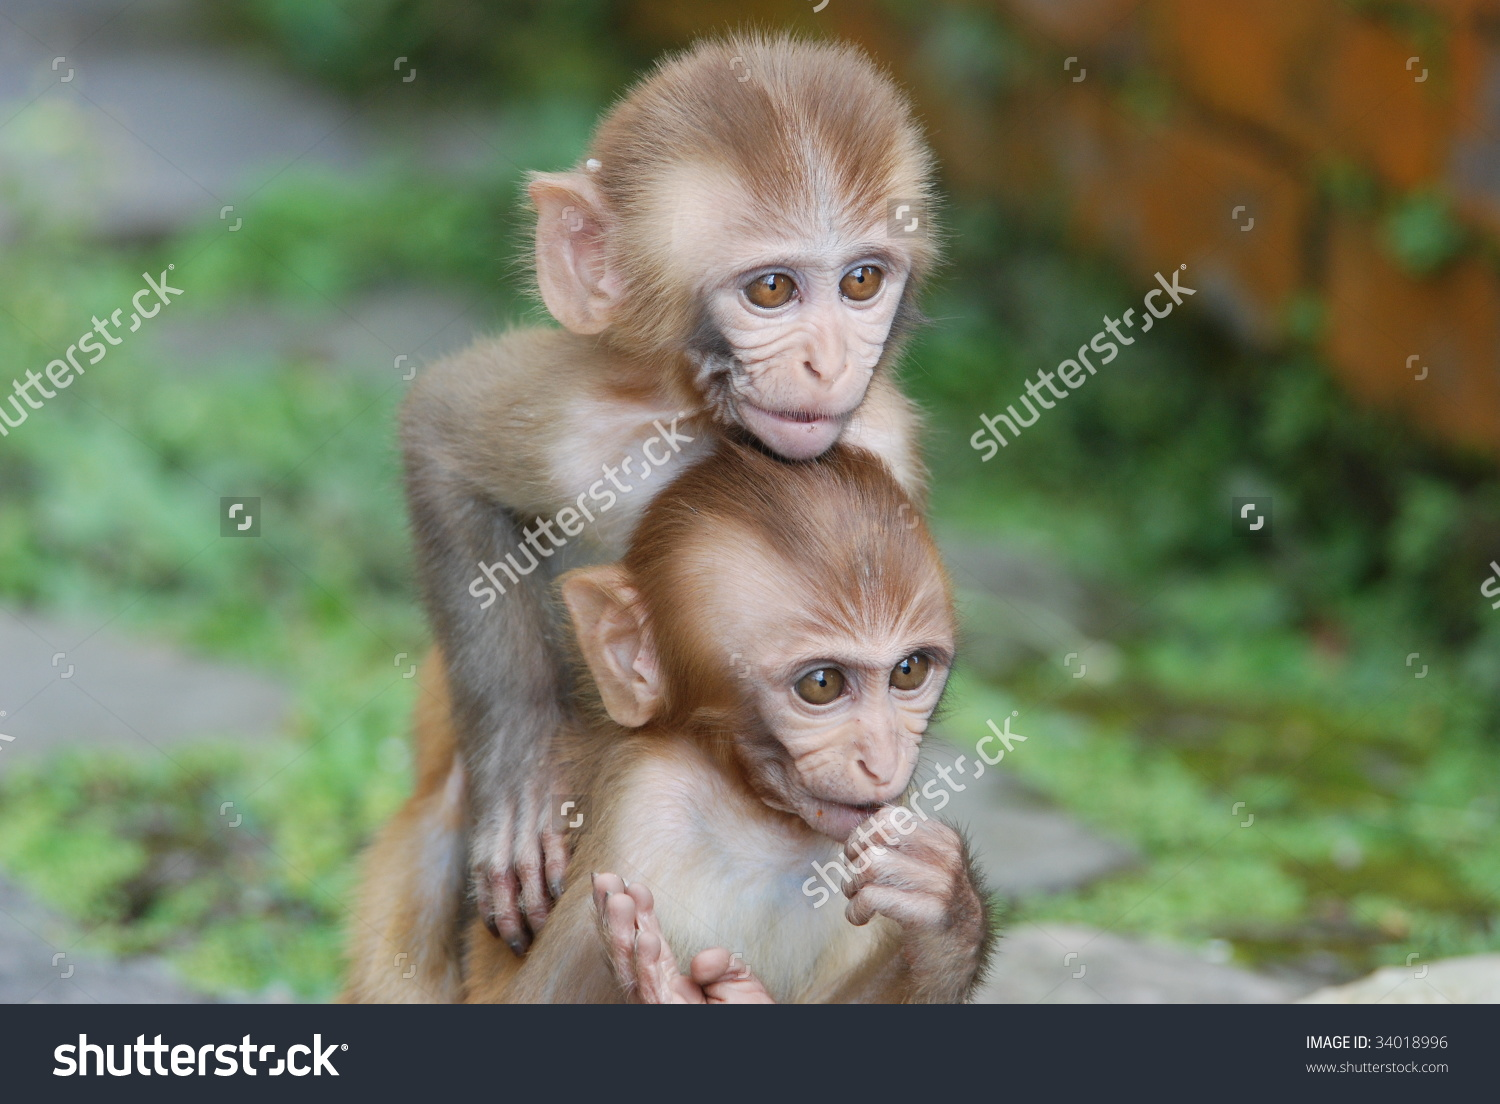 Rhesus Macaque clipart #7, Download drawings